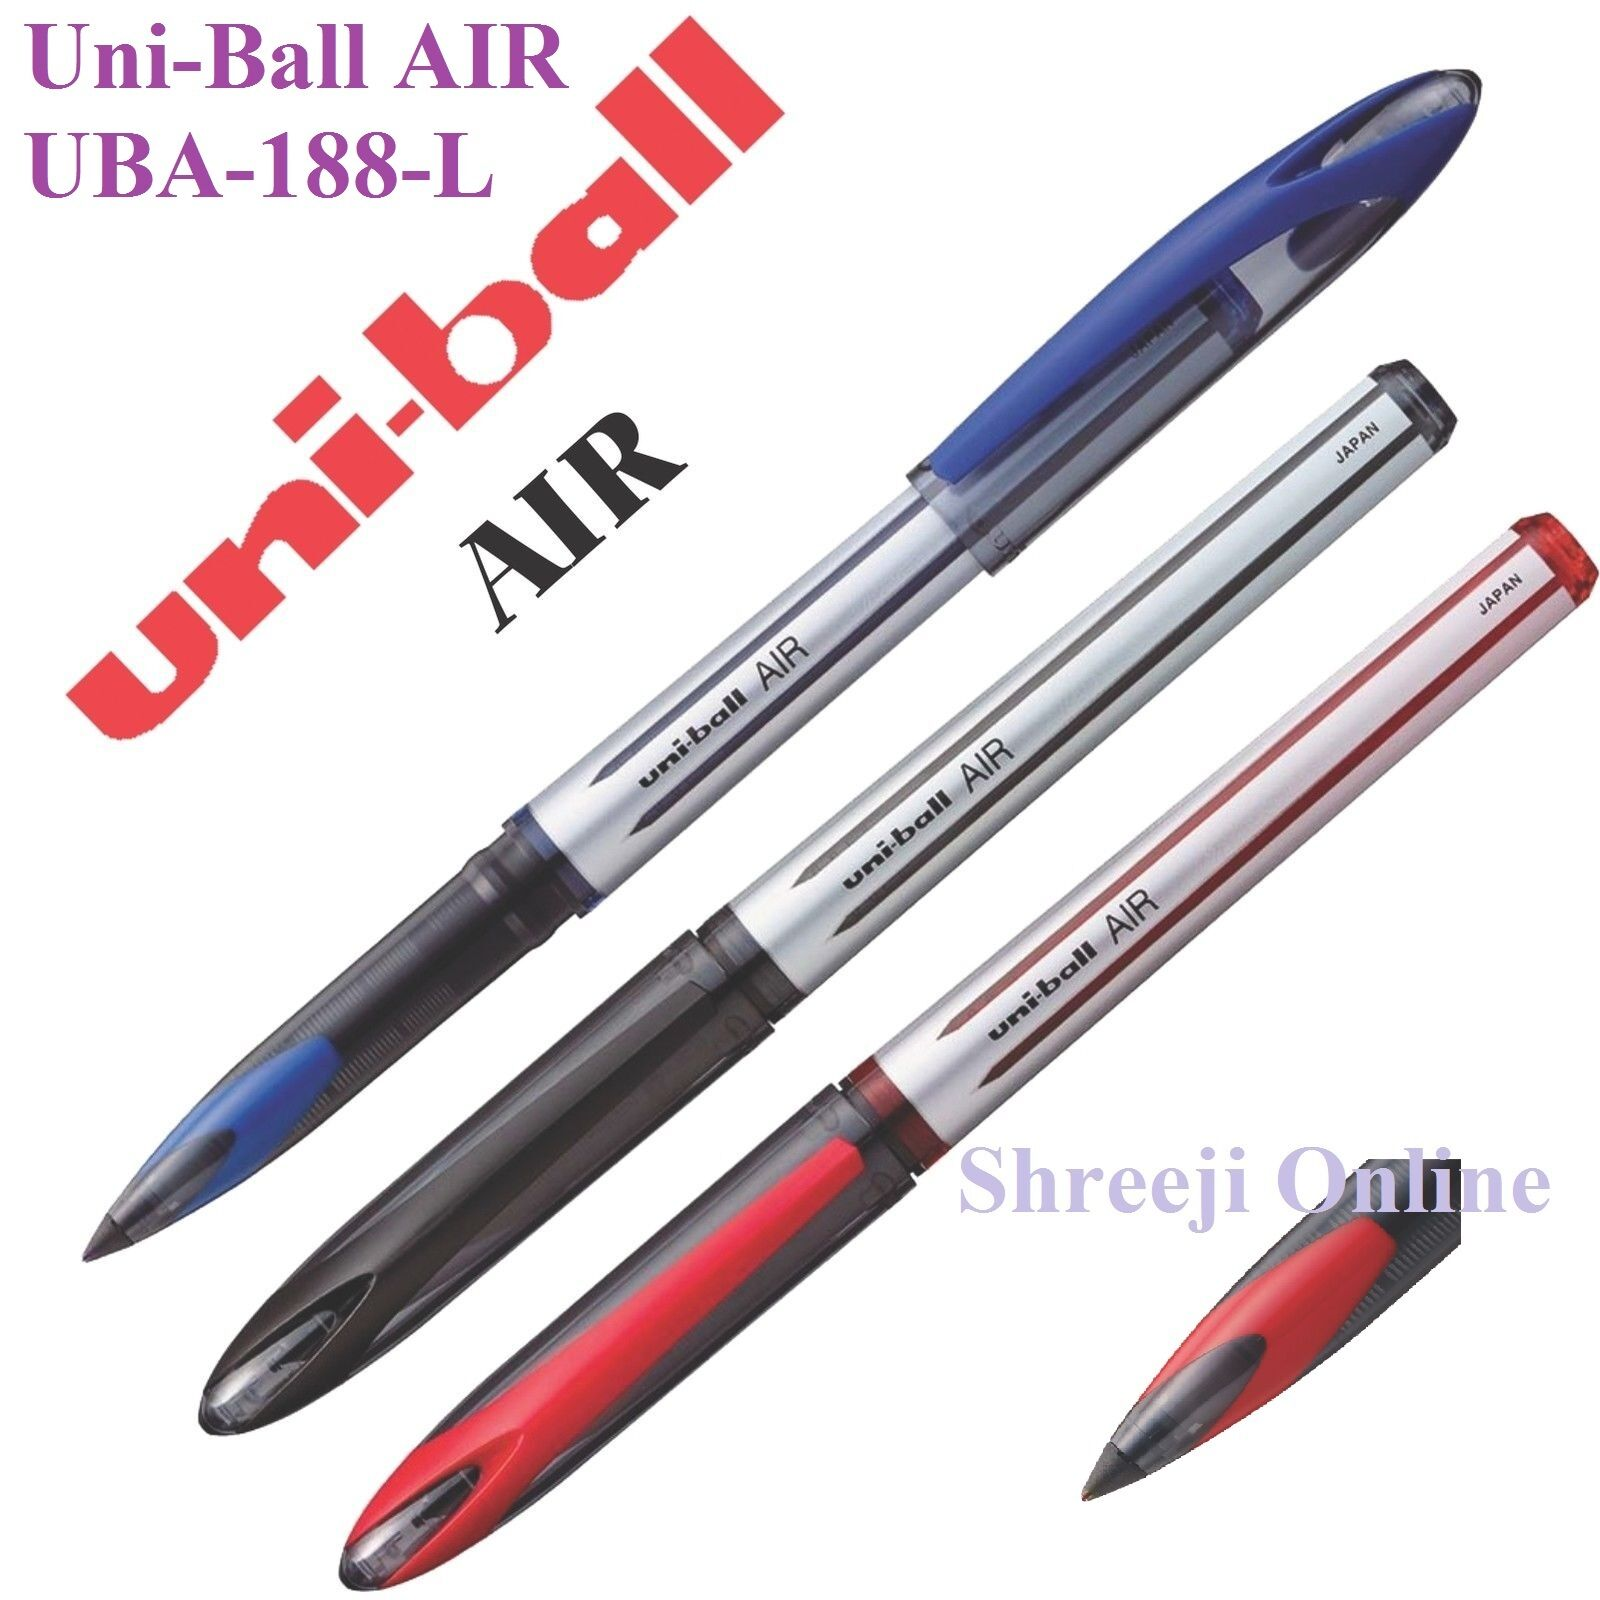 BLUE Uni Ball AIR UBA-188-L BROAD 0.7MM Rollerball Pen BLACK RED Pack of 3